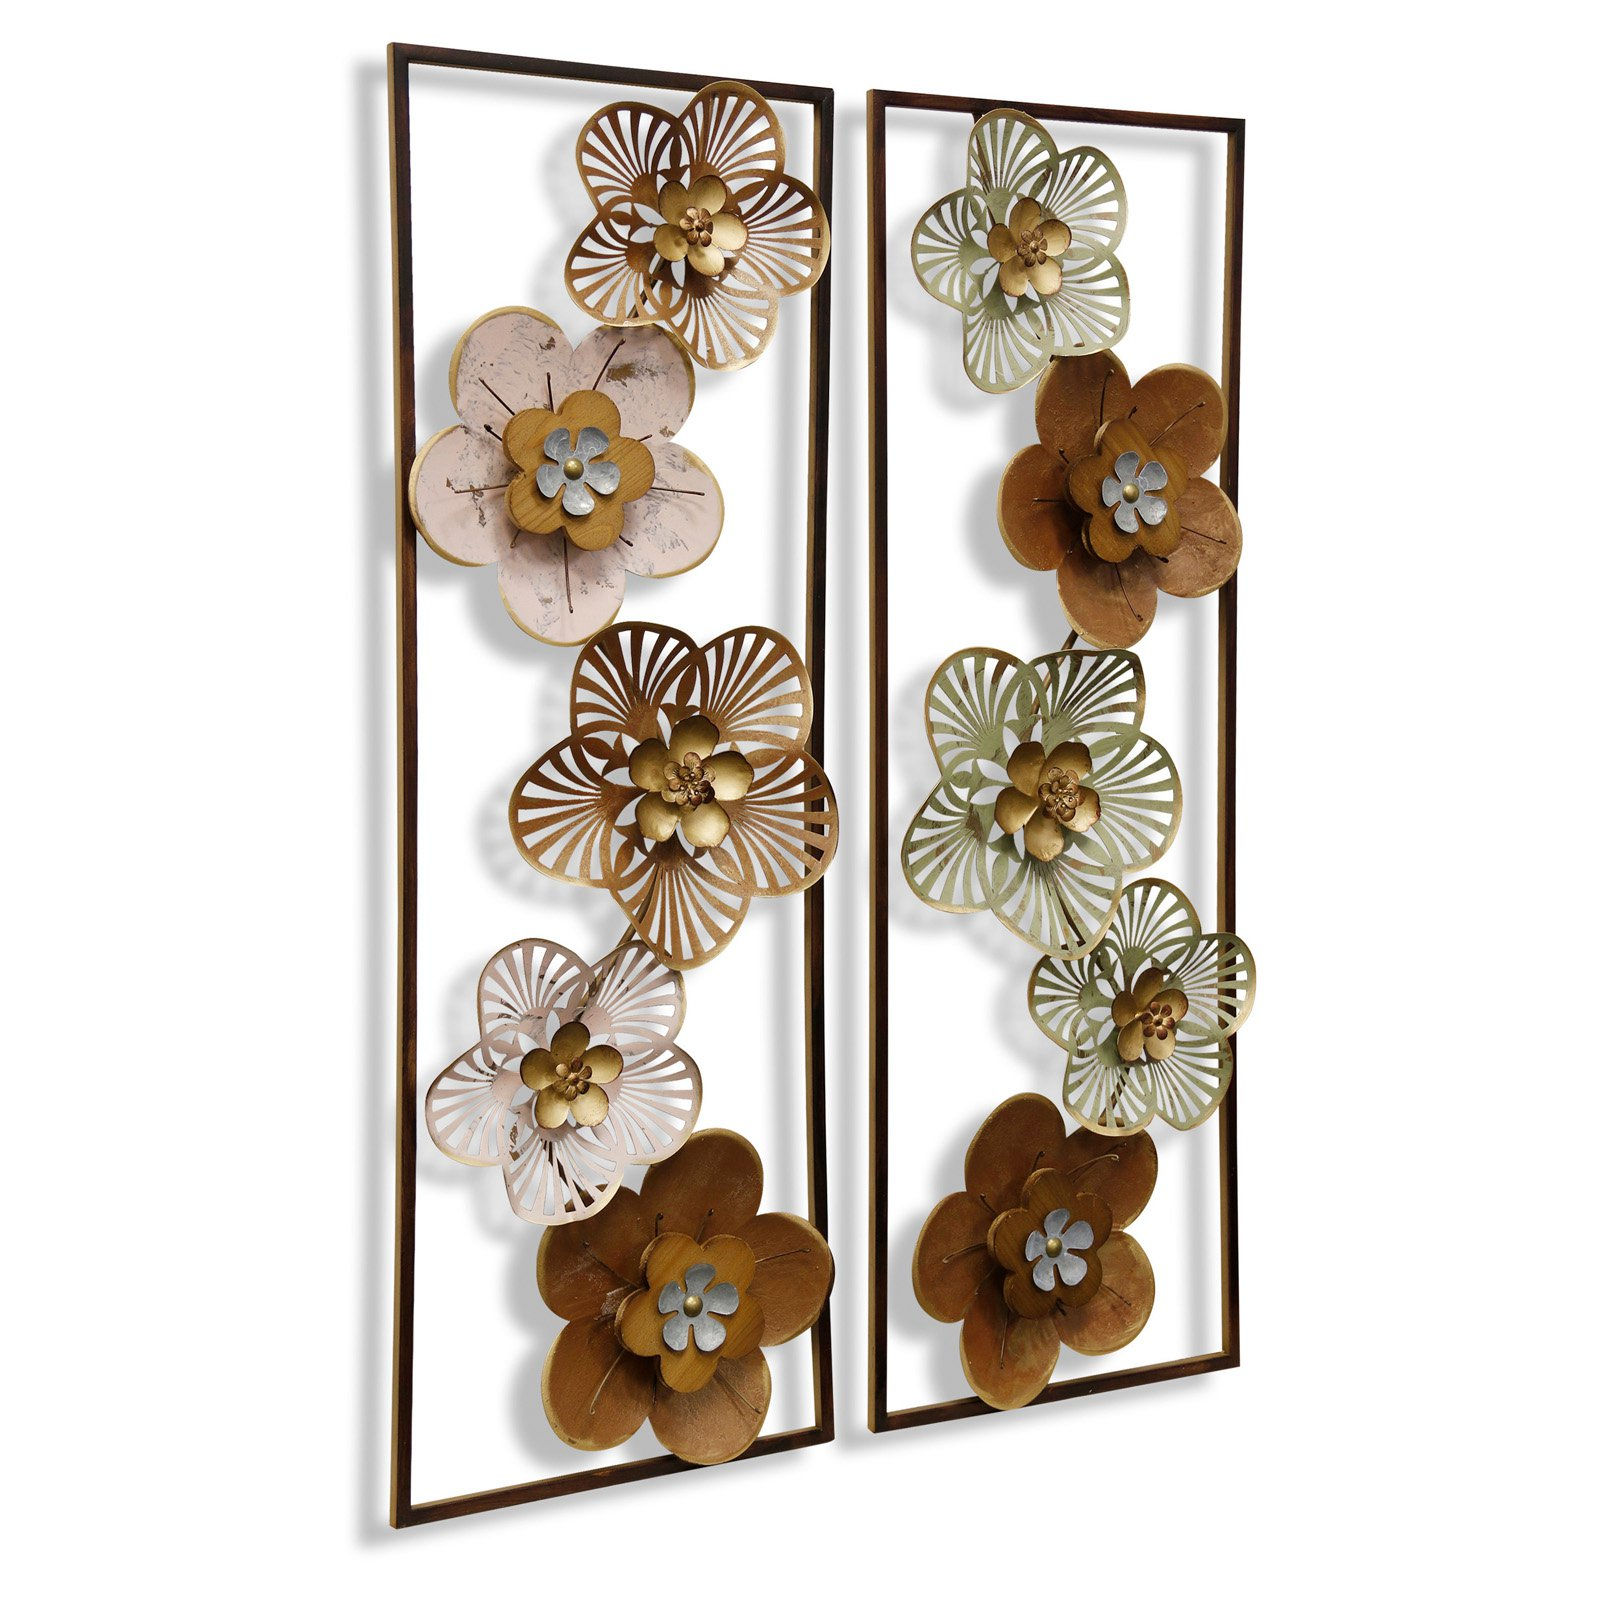 Stylecraft Floral Design Wall Sculptures – Set Of 2 With Regard To Panel Wood Wall Decor Sets (set Of 2) (View 8 of 30)